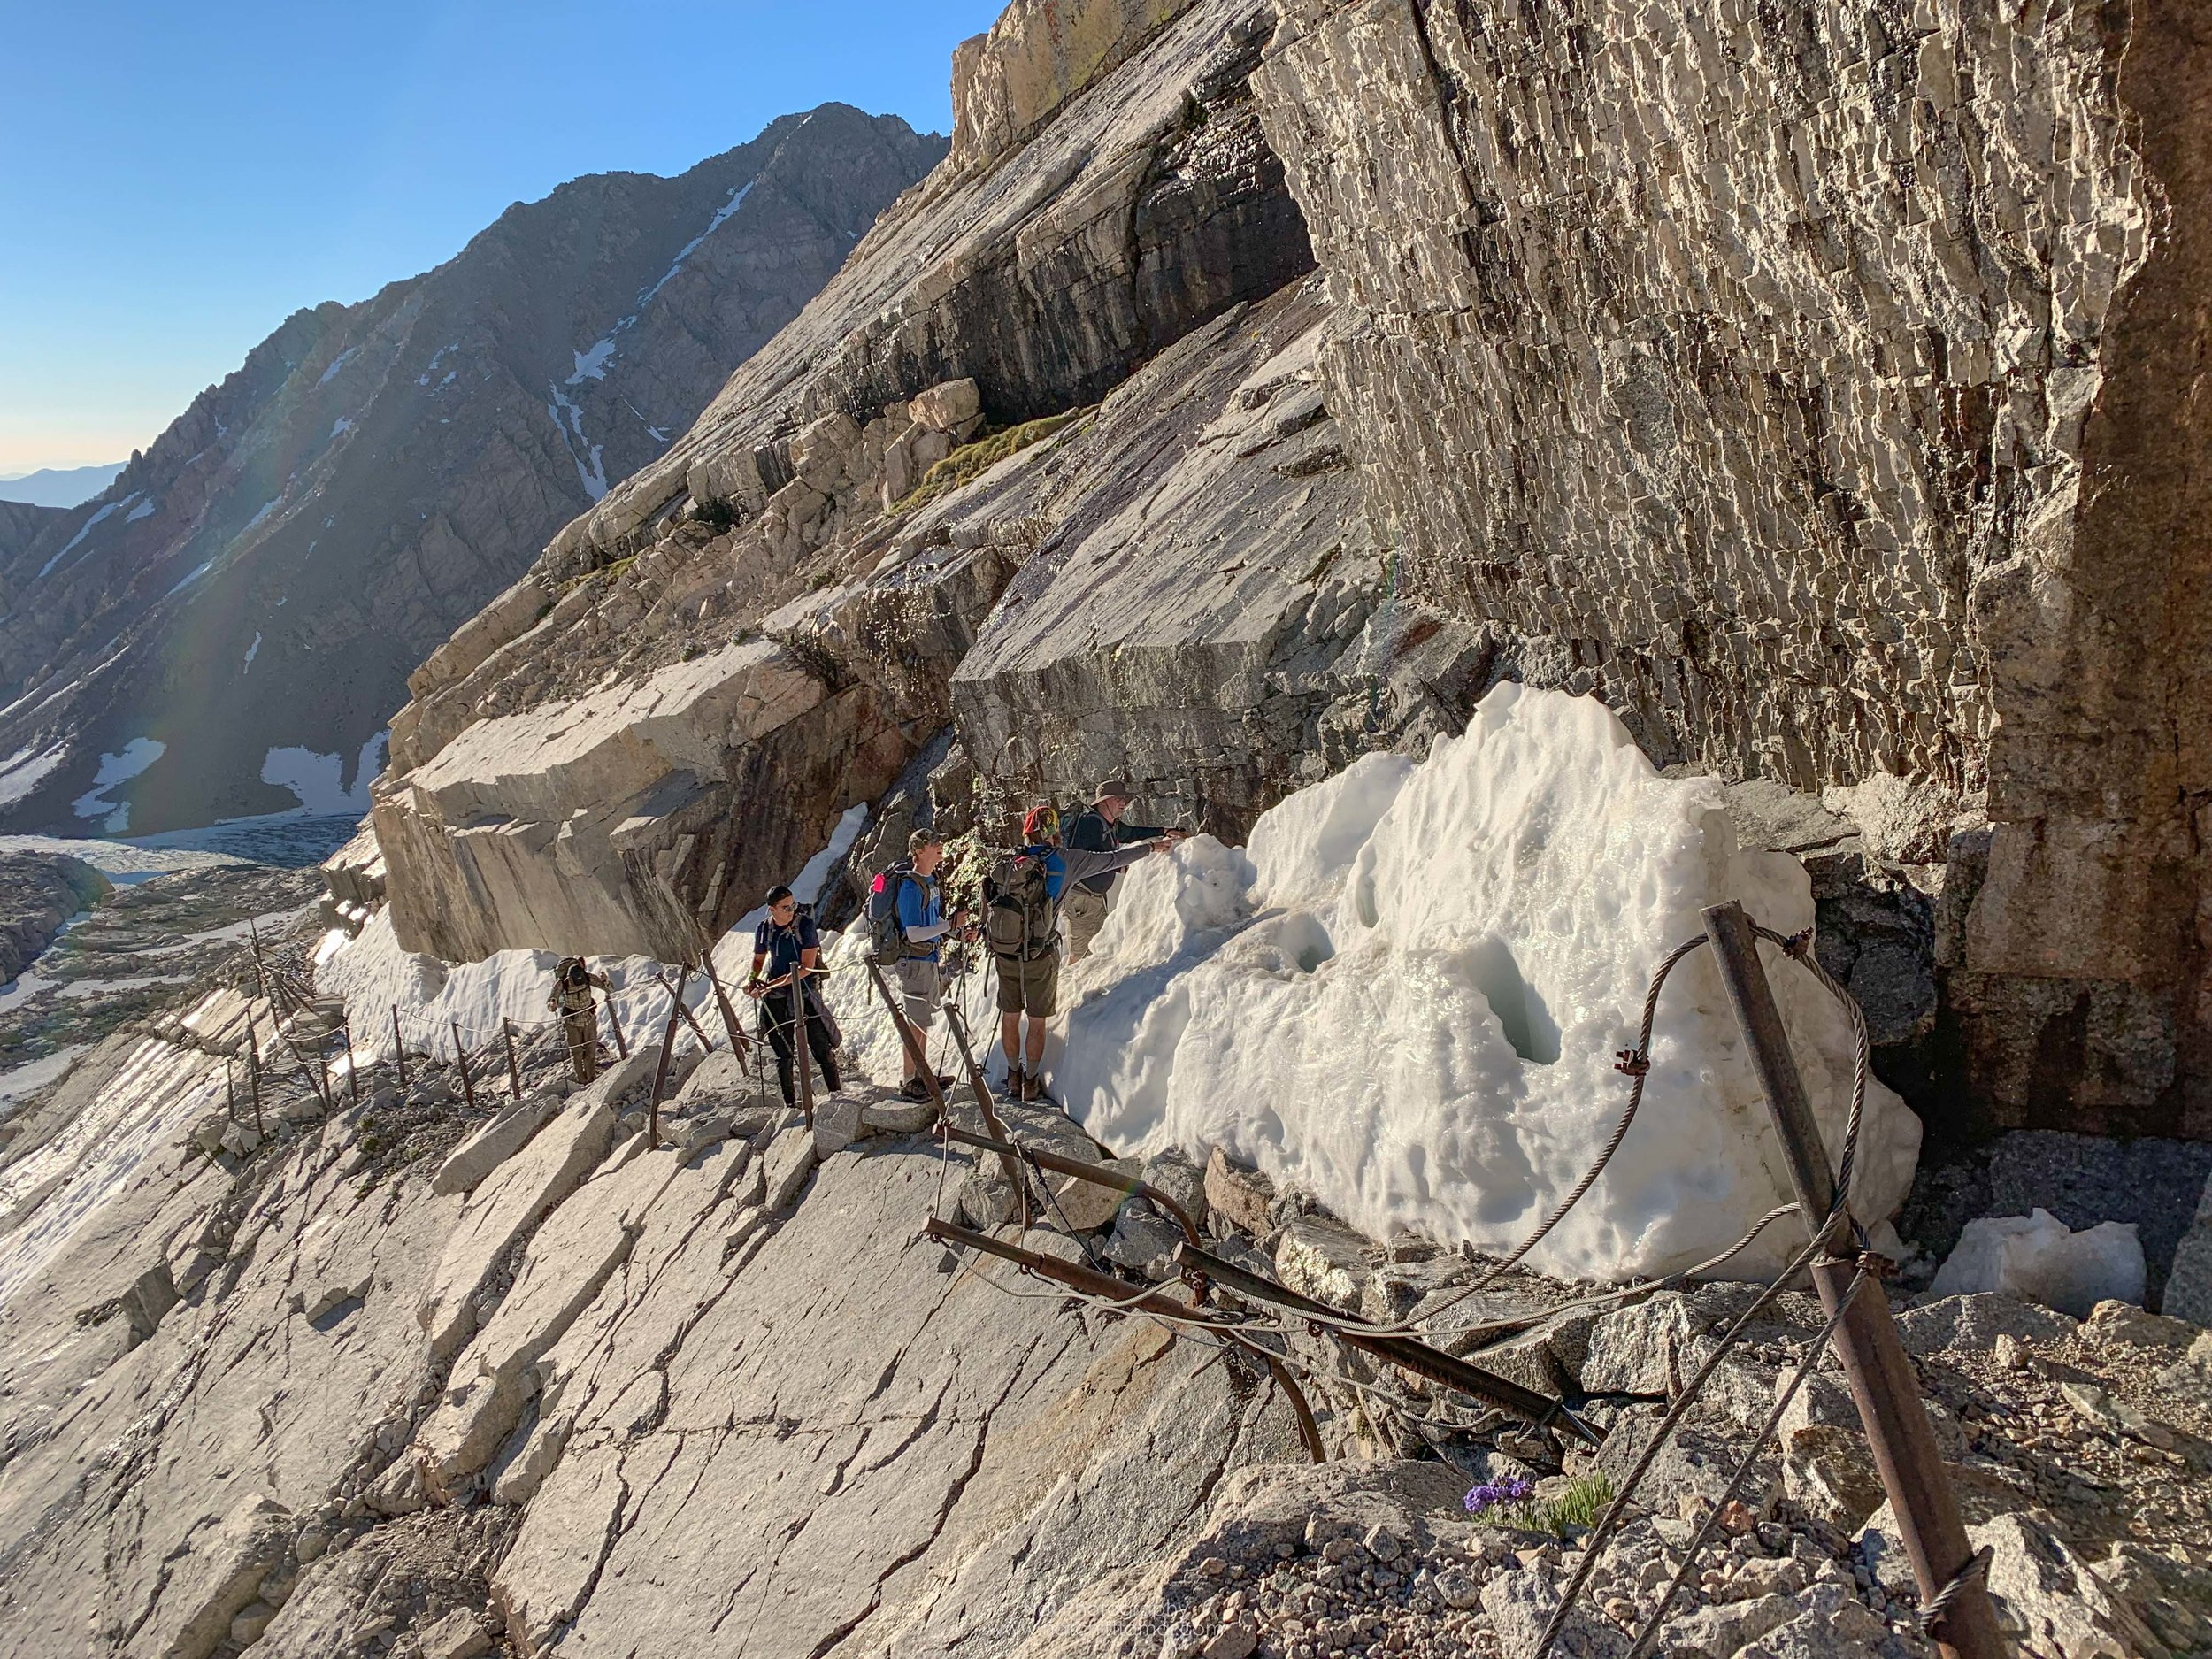 Hikers are figuring out the best way to cross this section.